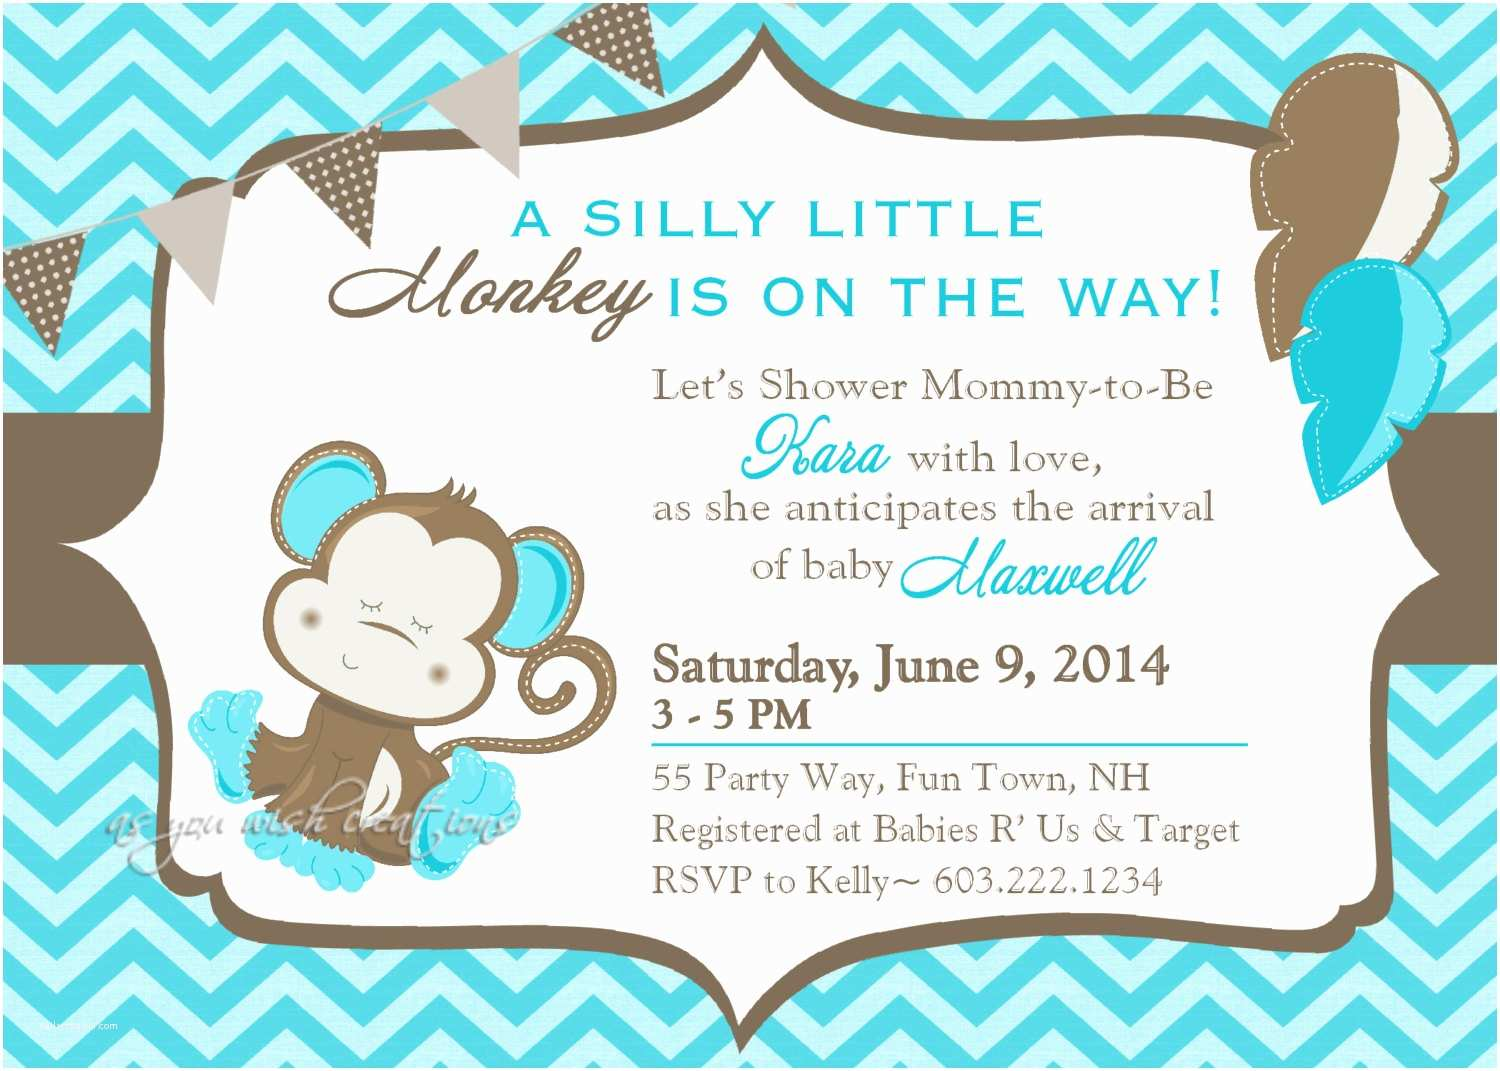 Cheap Baby Shower Invitations Girl Ideas About Inexpensive Baby Shower Invitations Girl for